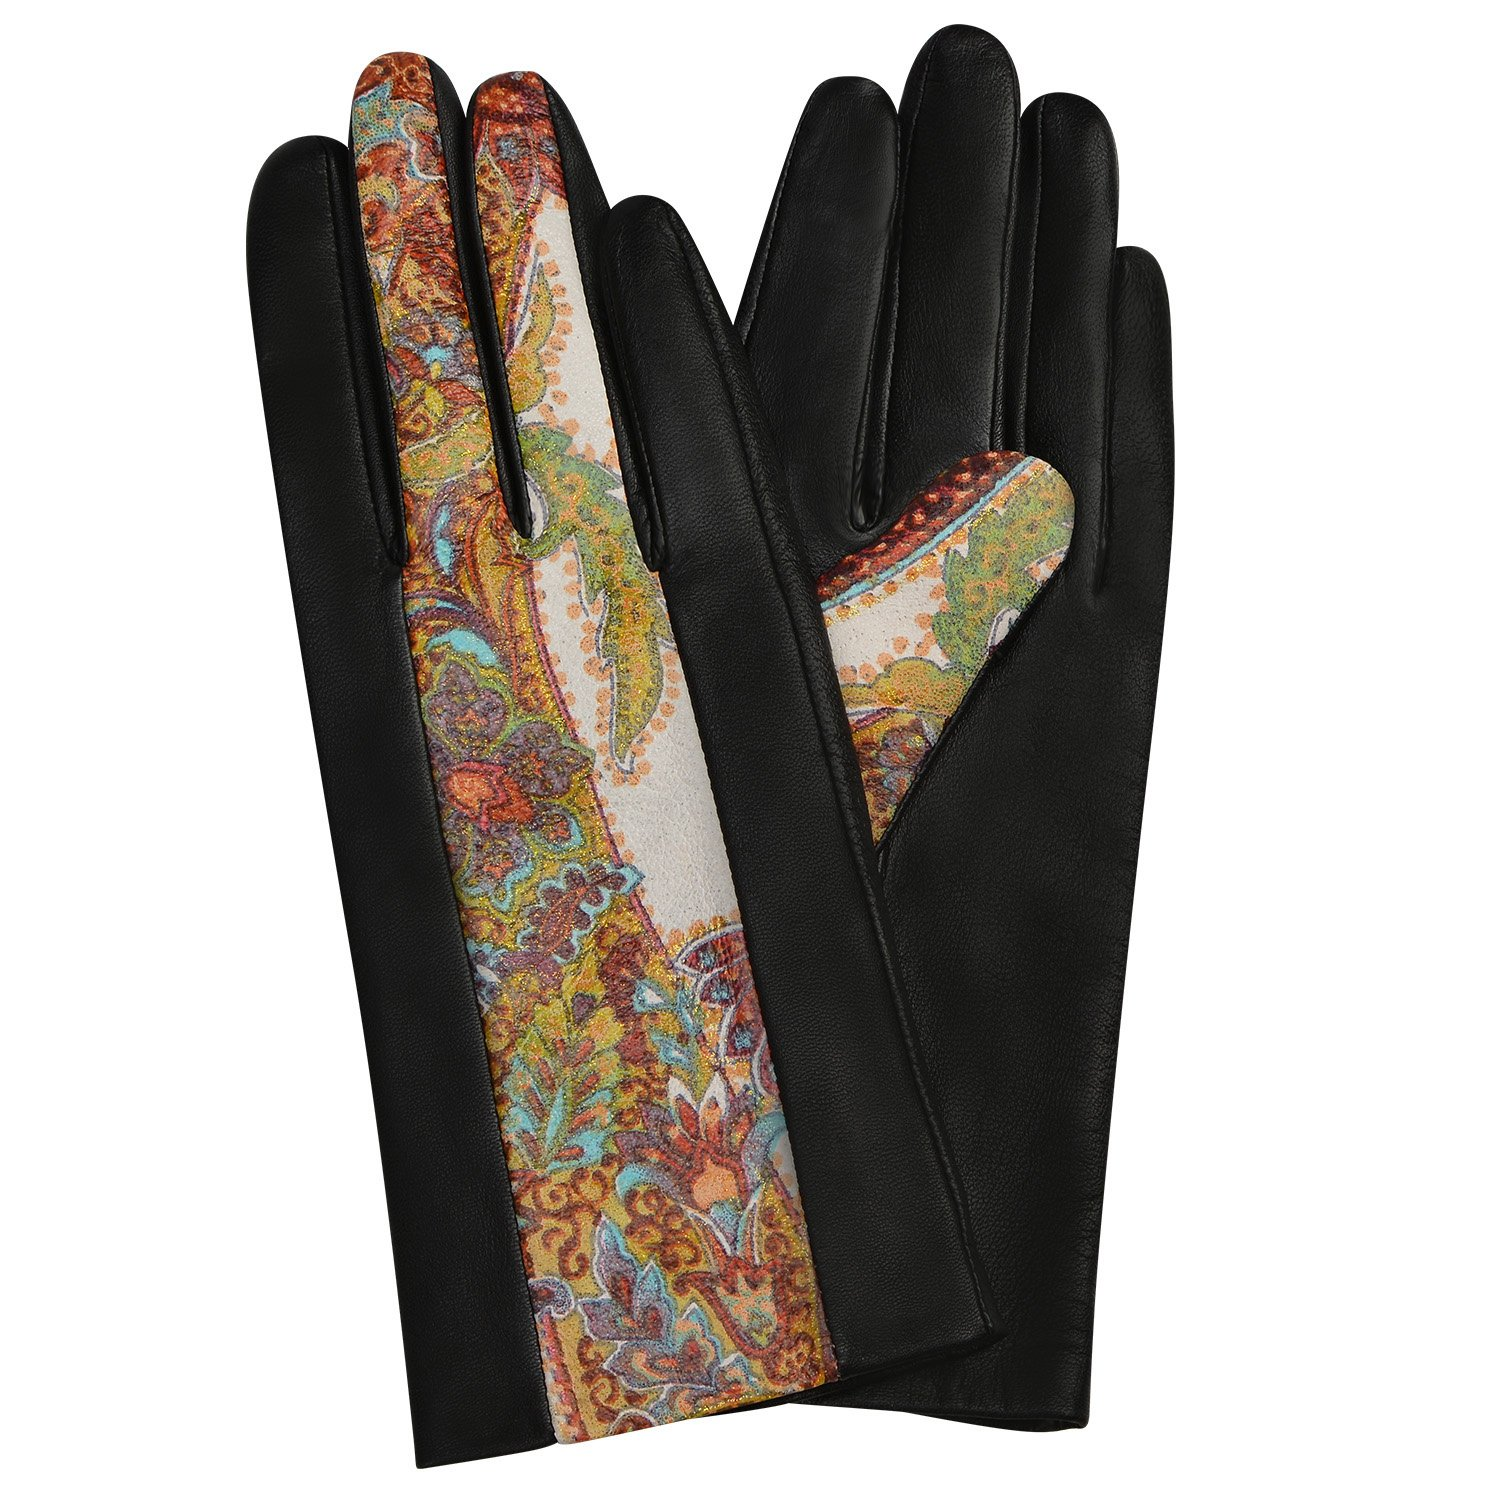 GSG Womens Novelty Paisley Italian Genuine Nappa Leather Gloves Lady Winter Gloves Full Palm Touchscreen 7 Black-Z